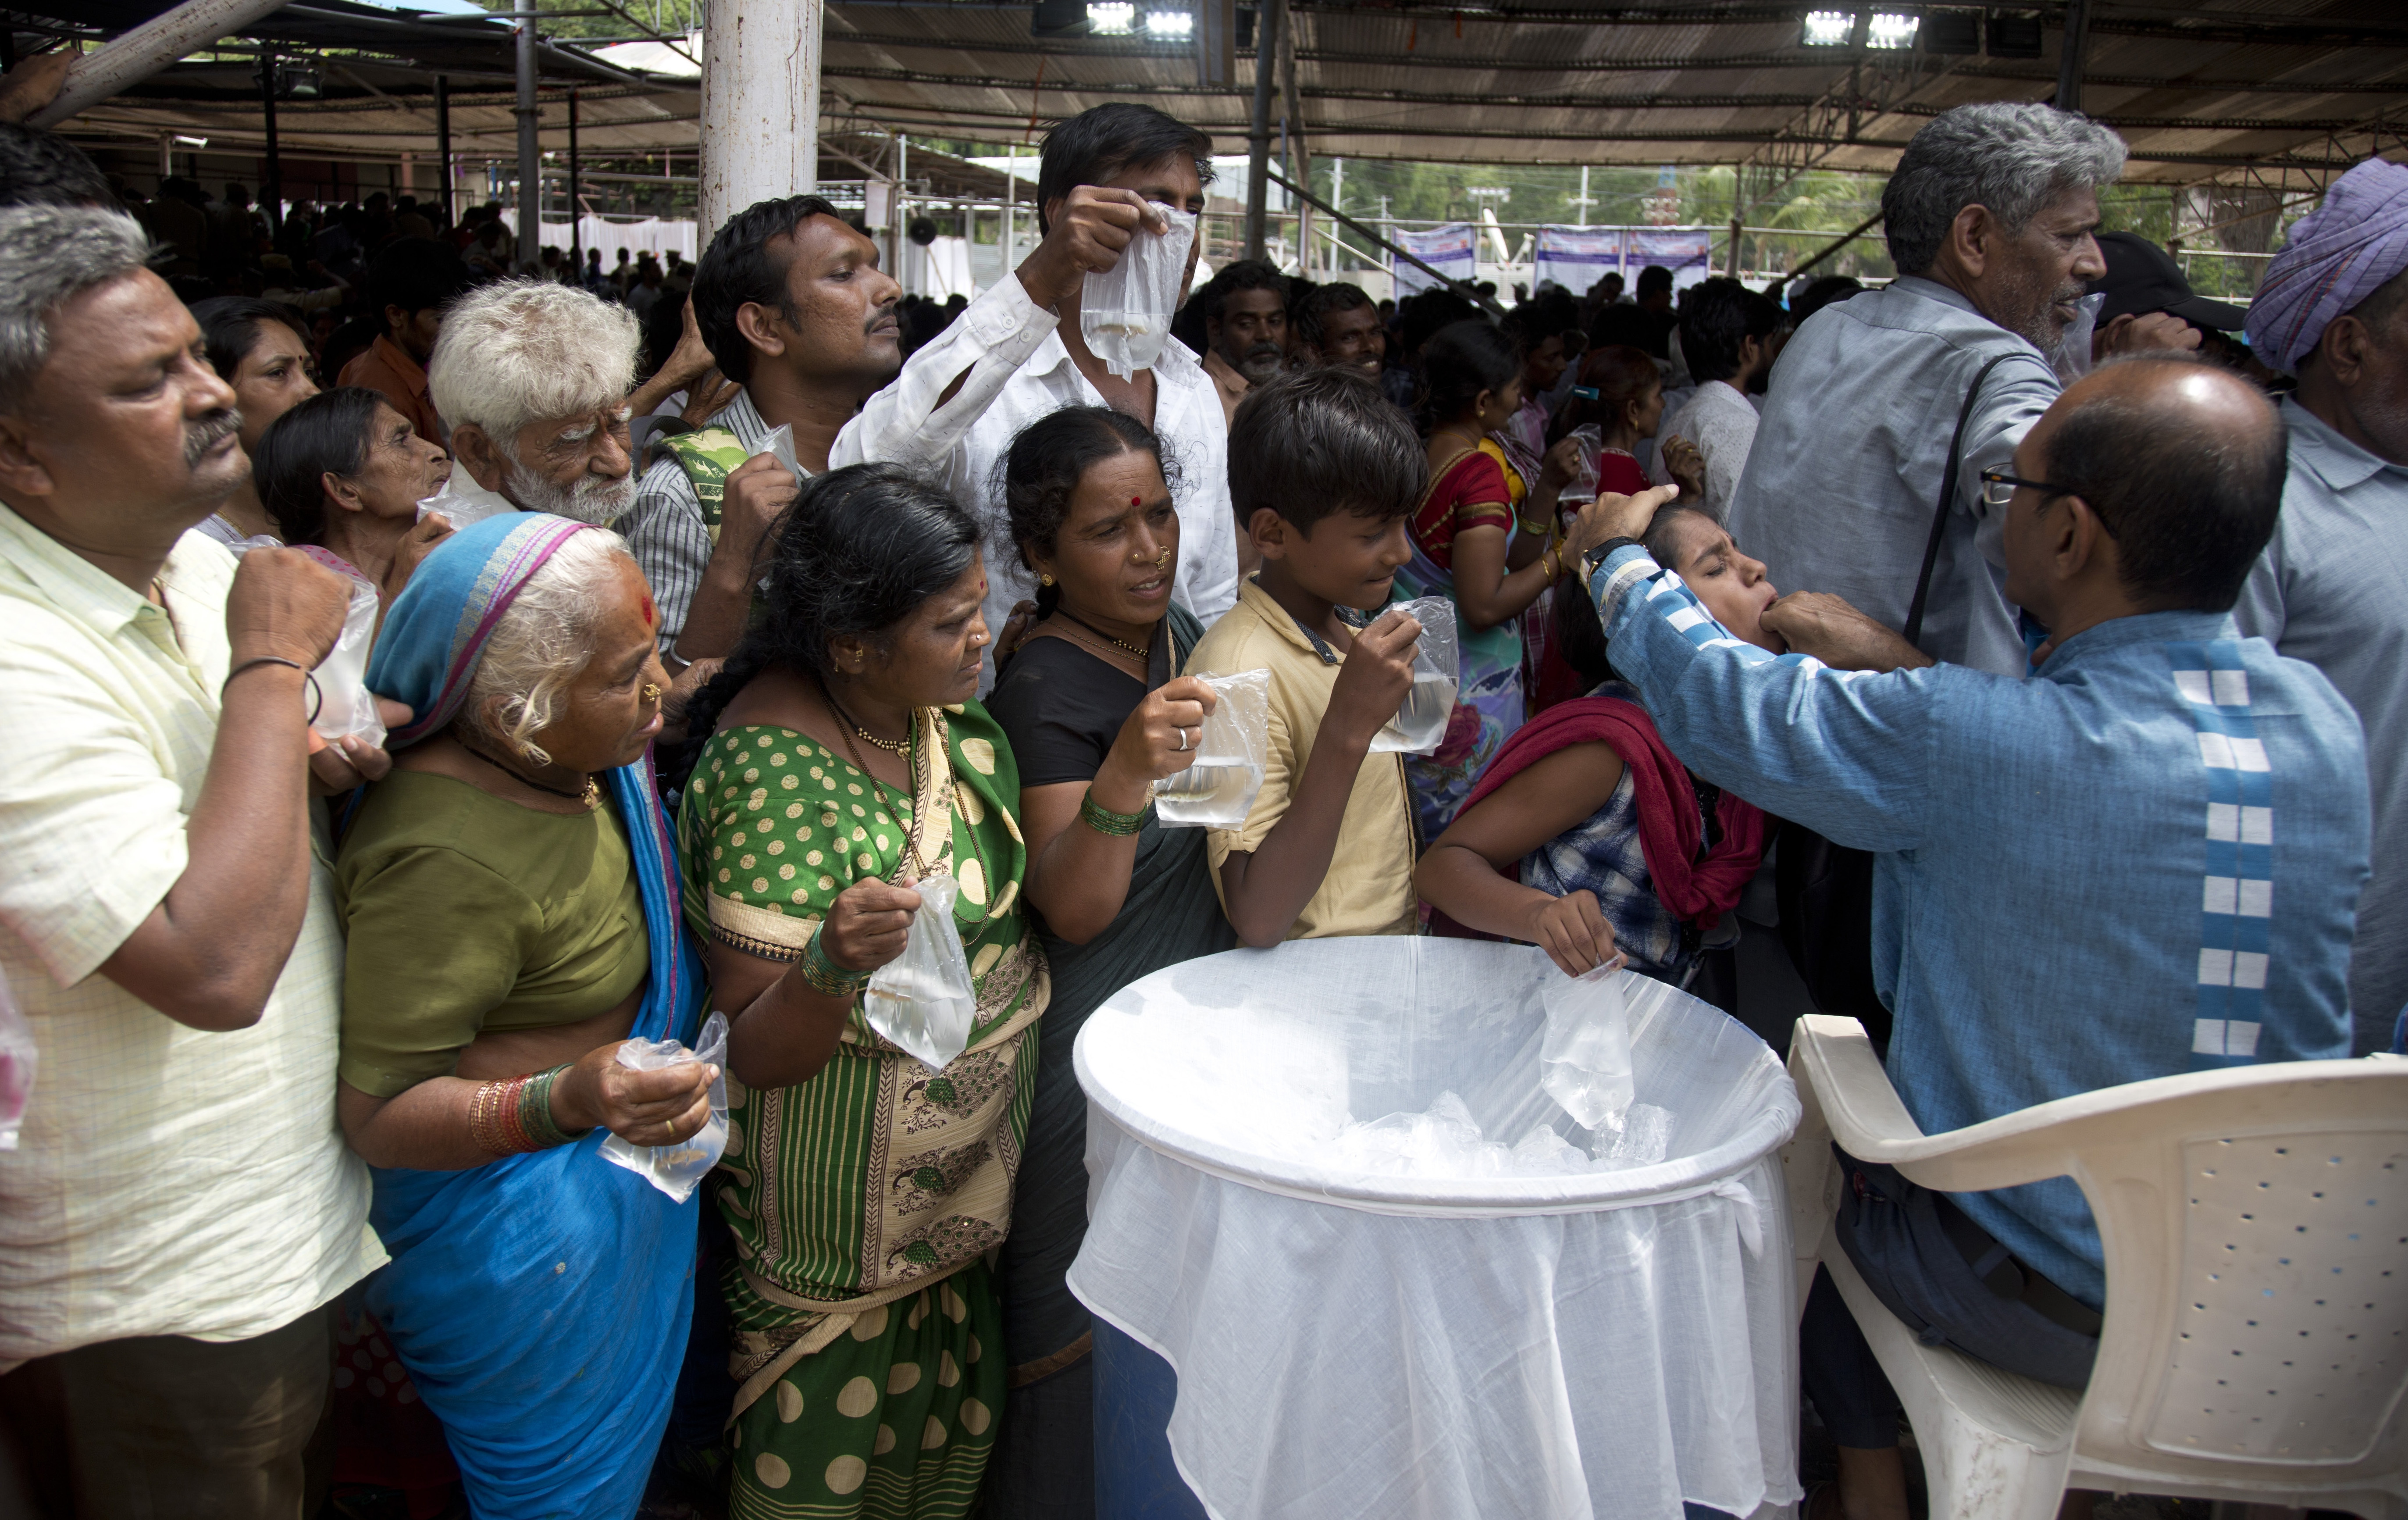 Standing in line in India